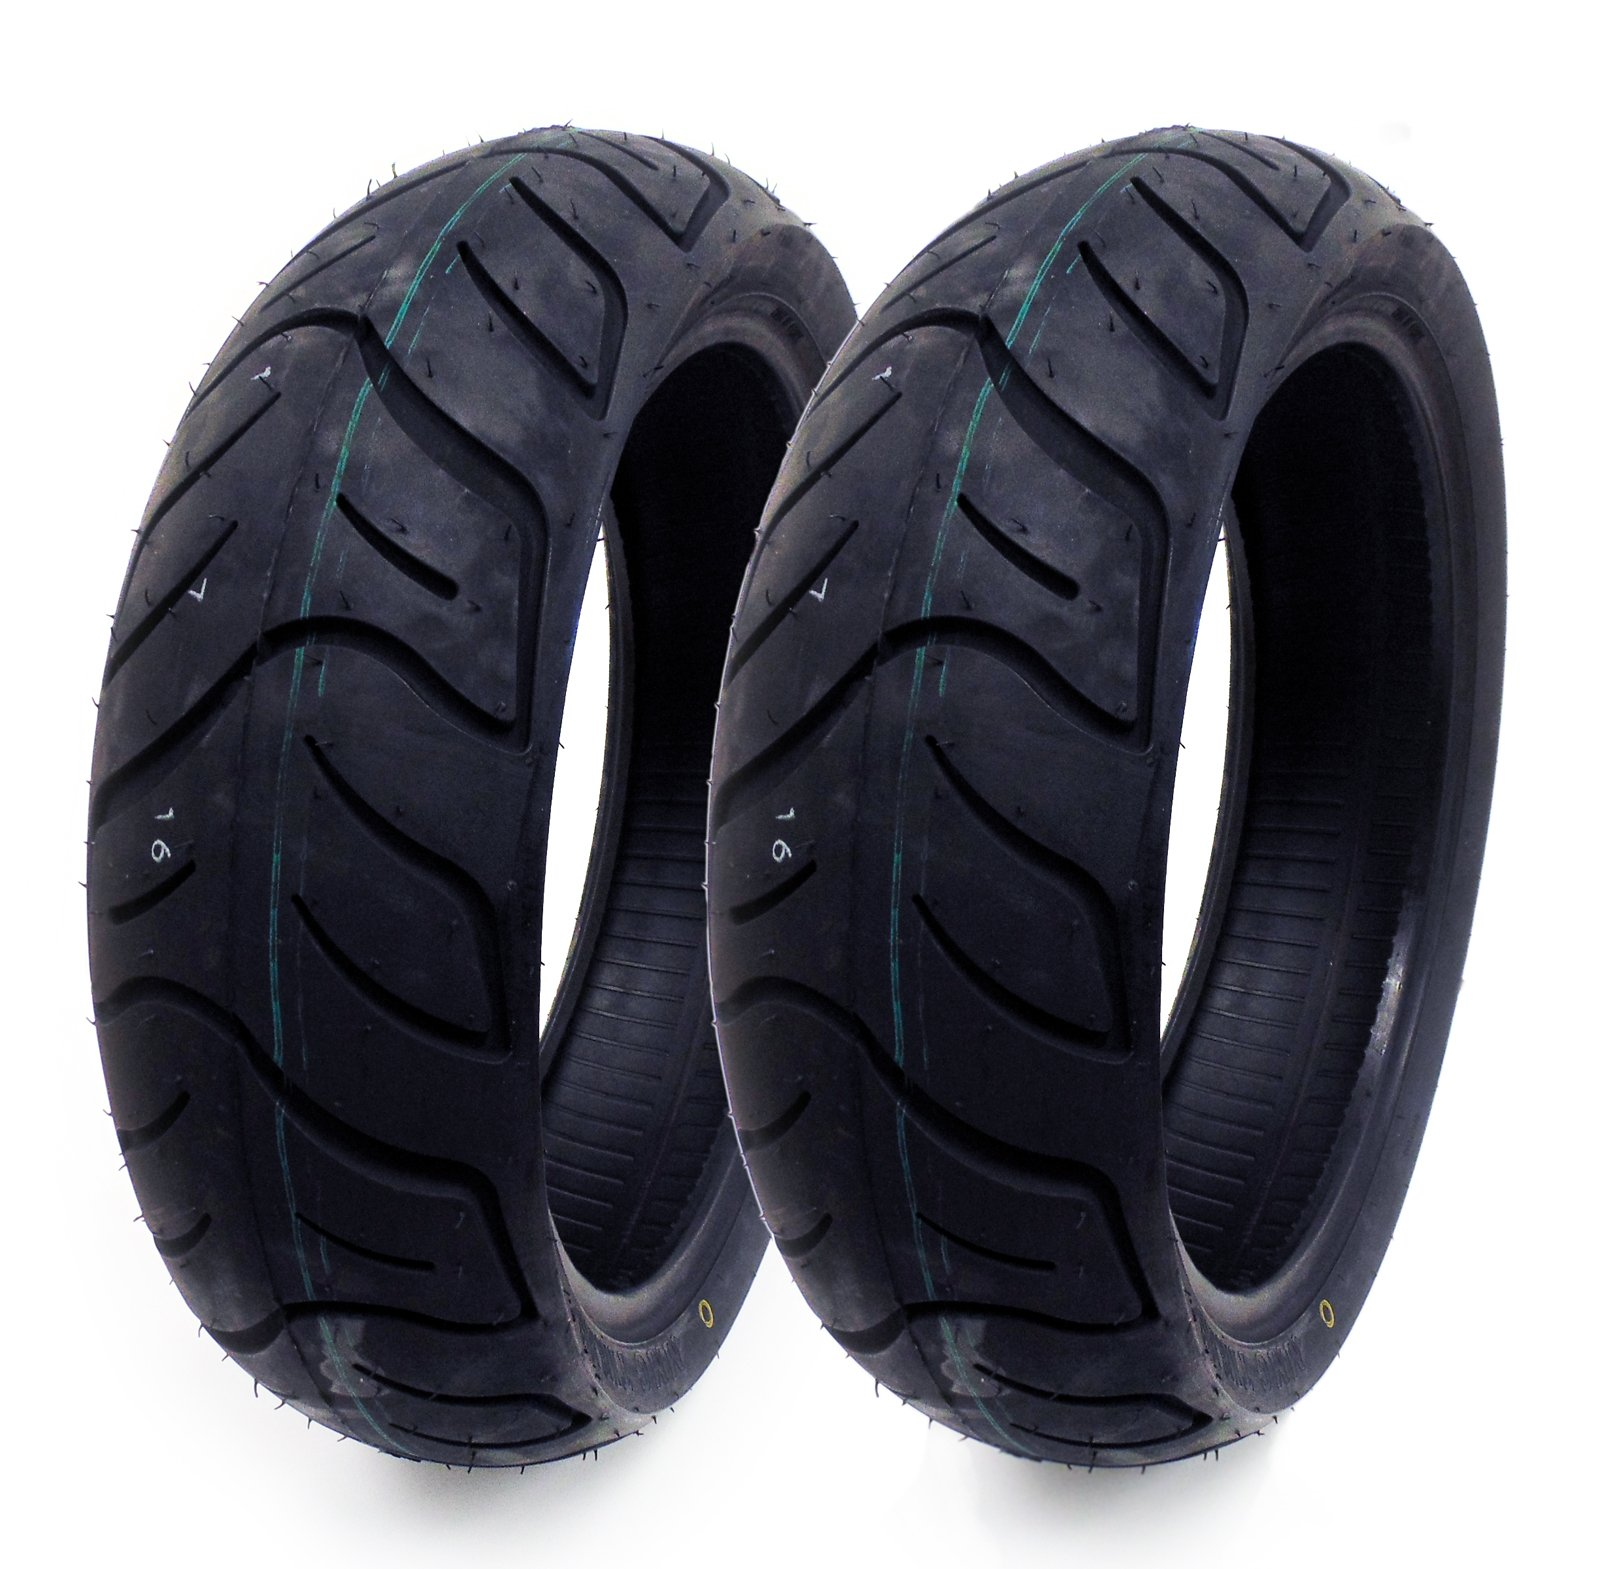 SET OF TWO: Tire 130/60-13 Tubeless Front/Rear Motorcycle Scooter Moped